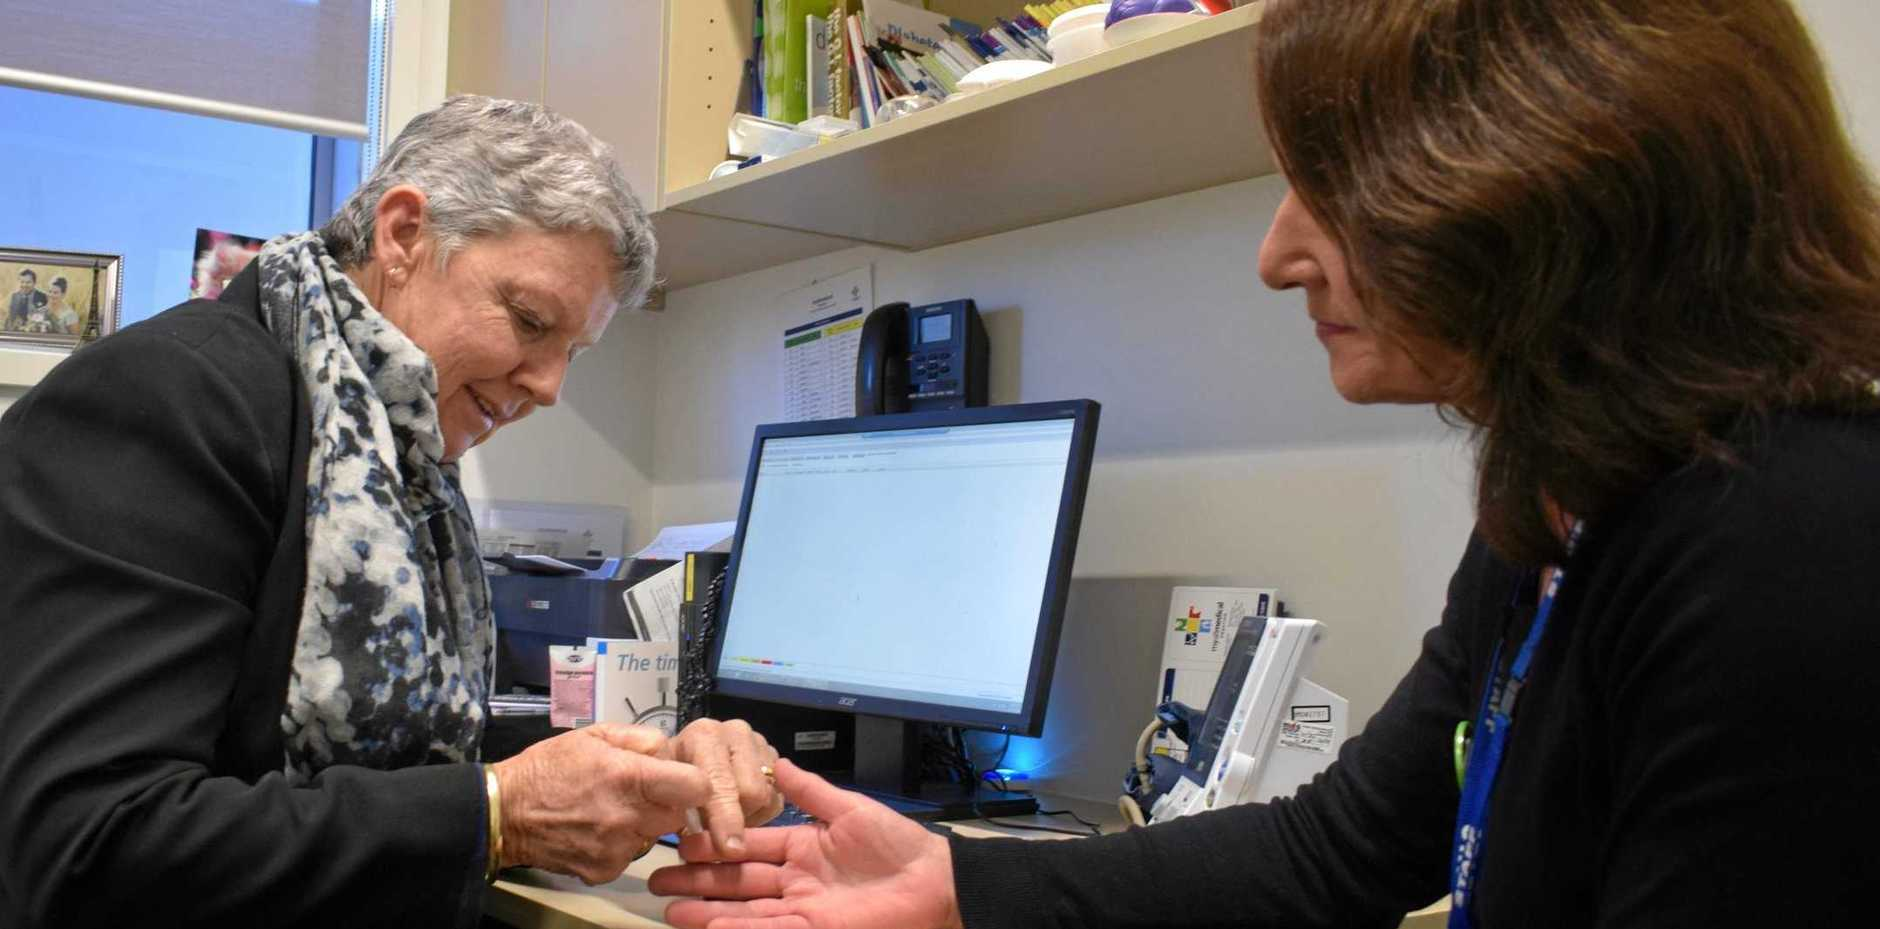 CHECKING UP: Credentialled Diabetes Educator Lyn Wilkie tests a colleague's blood sugar in the name of diabetes education in the bush.